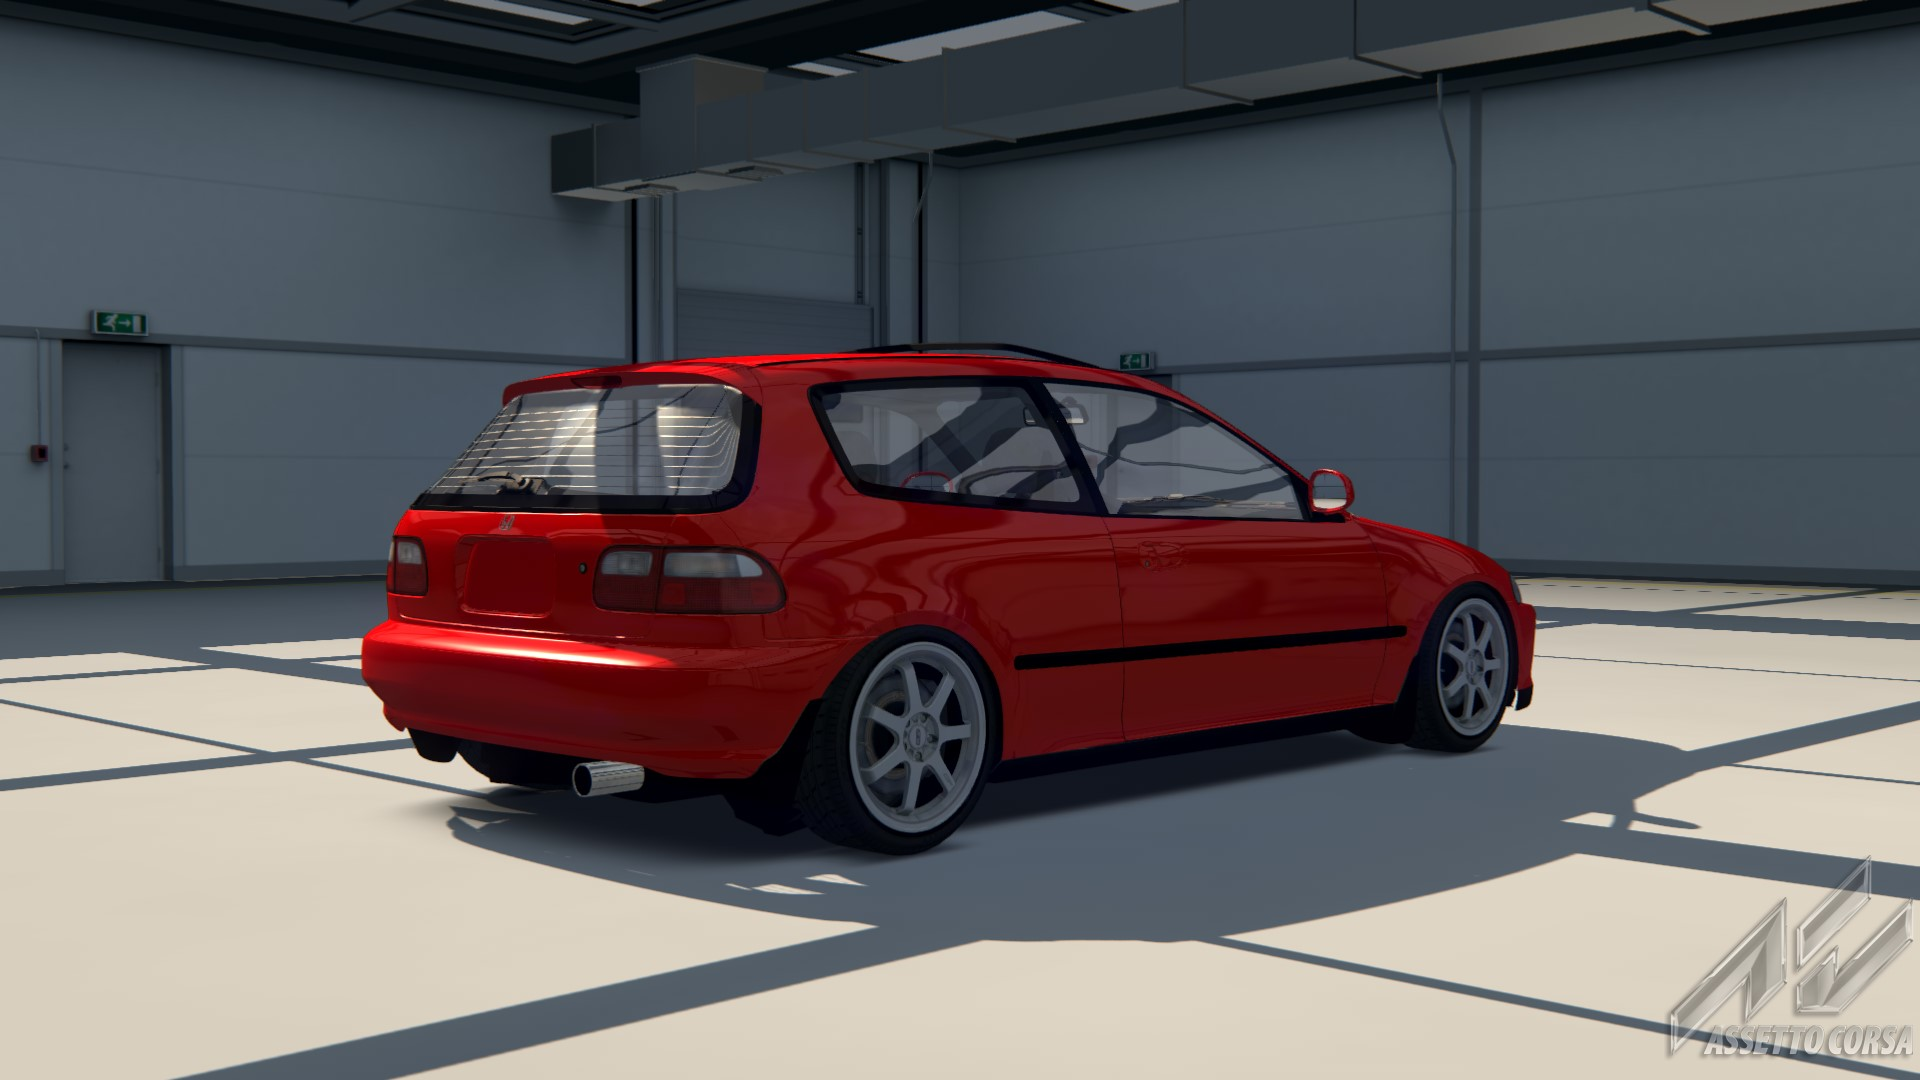 civic vti eg6 honda car detail assetto corsa database. Black Bedroom Furniture Sets. Home Design Ideas